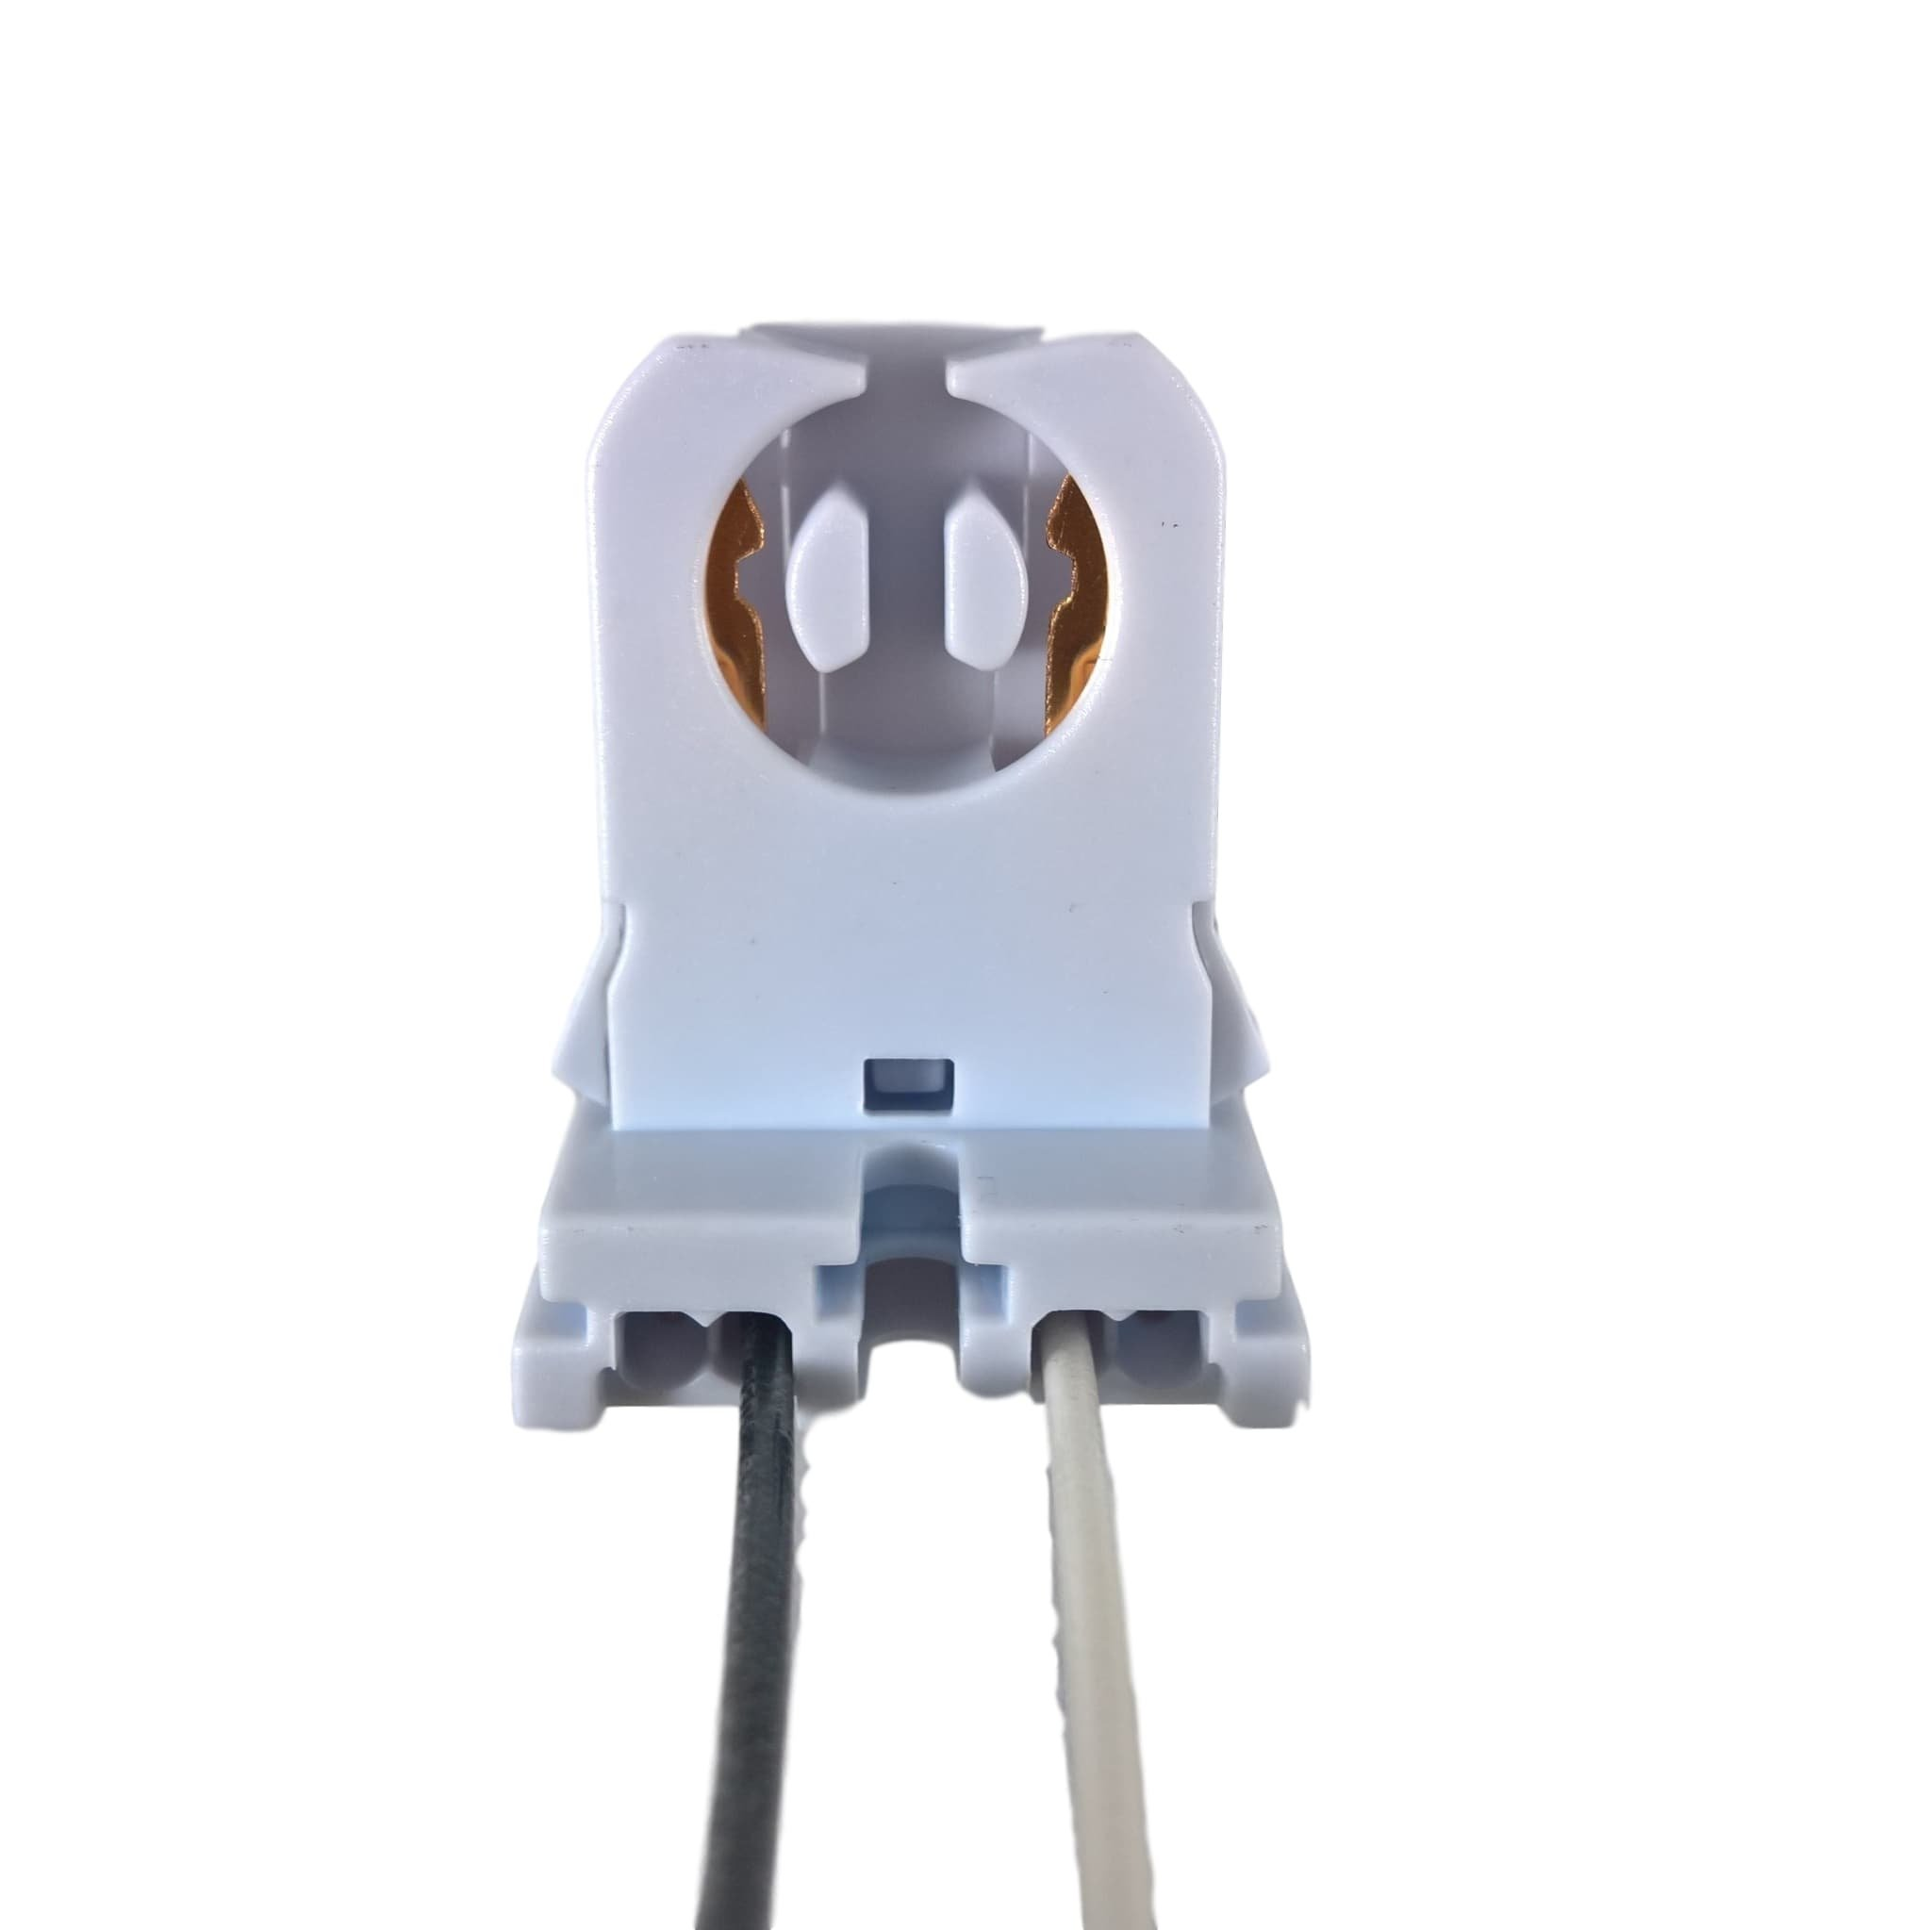 Pack of 15 - UL Listed Non-Shunted T8 Lamp Holder Socket Tombstone with 12 inches Wires Attached for LED Fluorescent Tube Replacements Turn-Type Lampholder